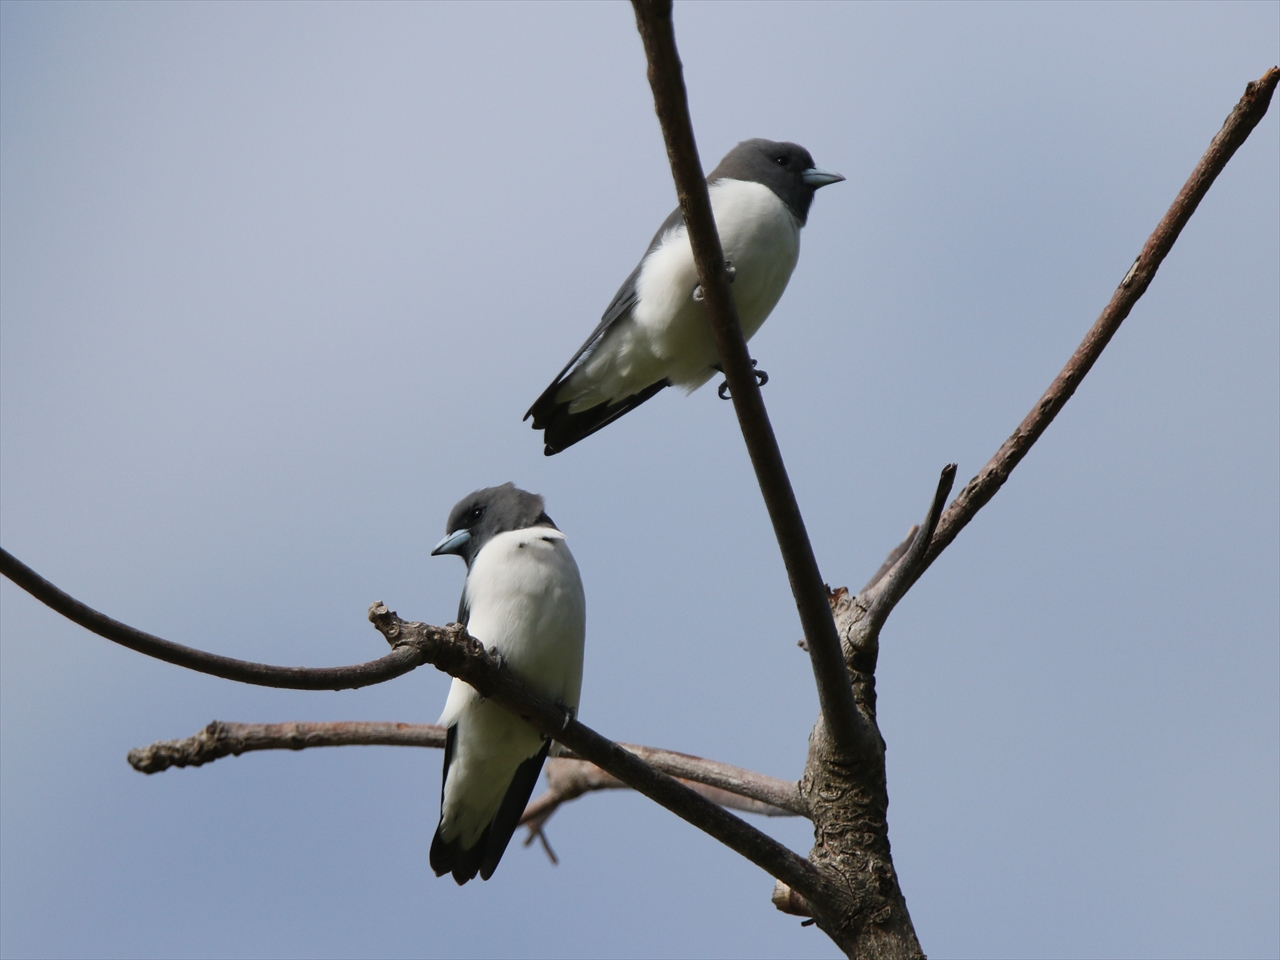 Whitebreasted_woodswallow